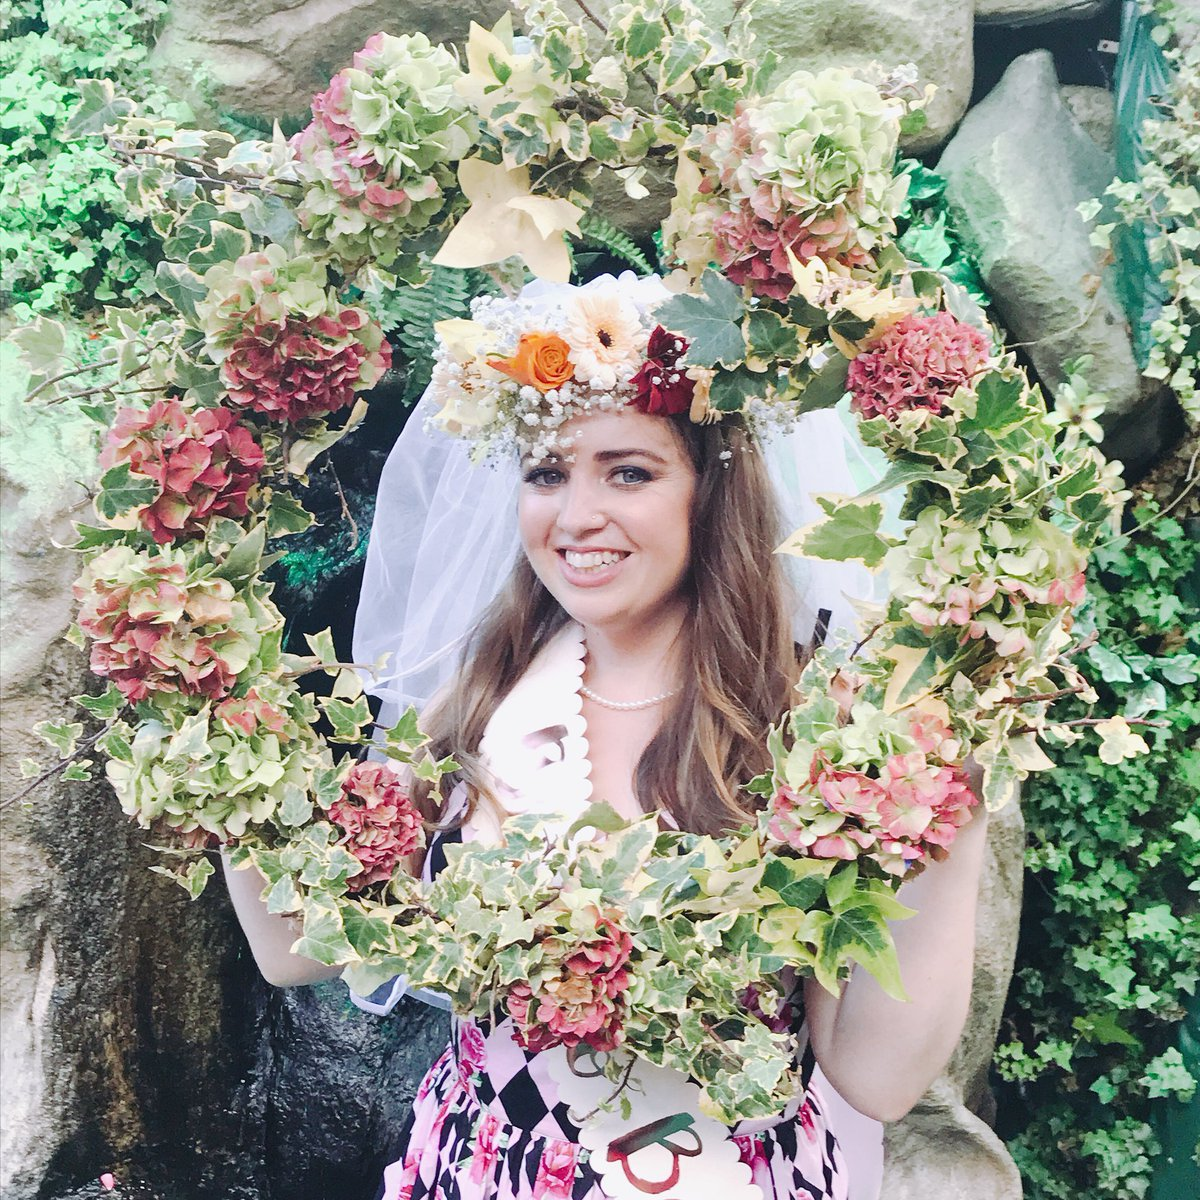 Flowercrown hashtag on twitter 1 reply 2 retweets 7 likes izmirmasajfo